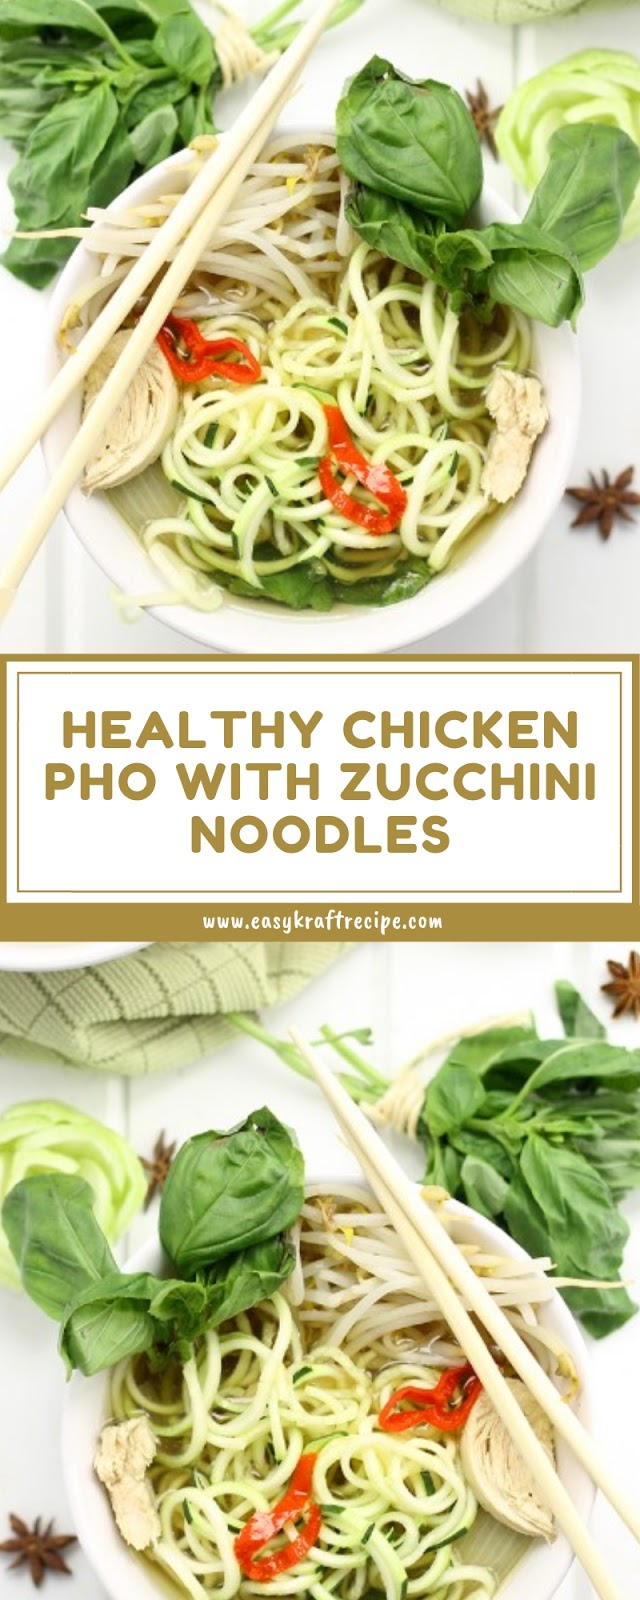 HEALTHY CHICKEN PHO WITH ZUCCHINI NOODLES